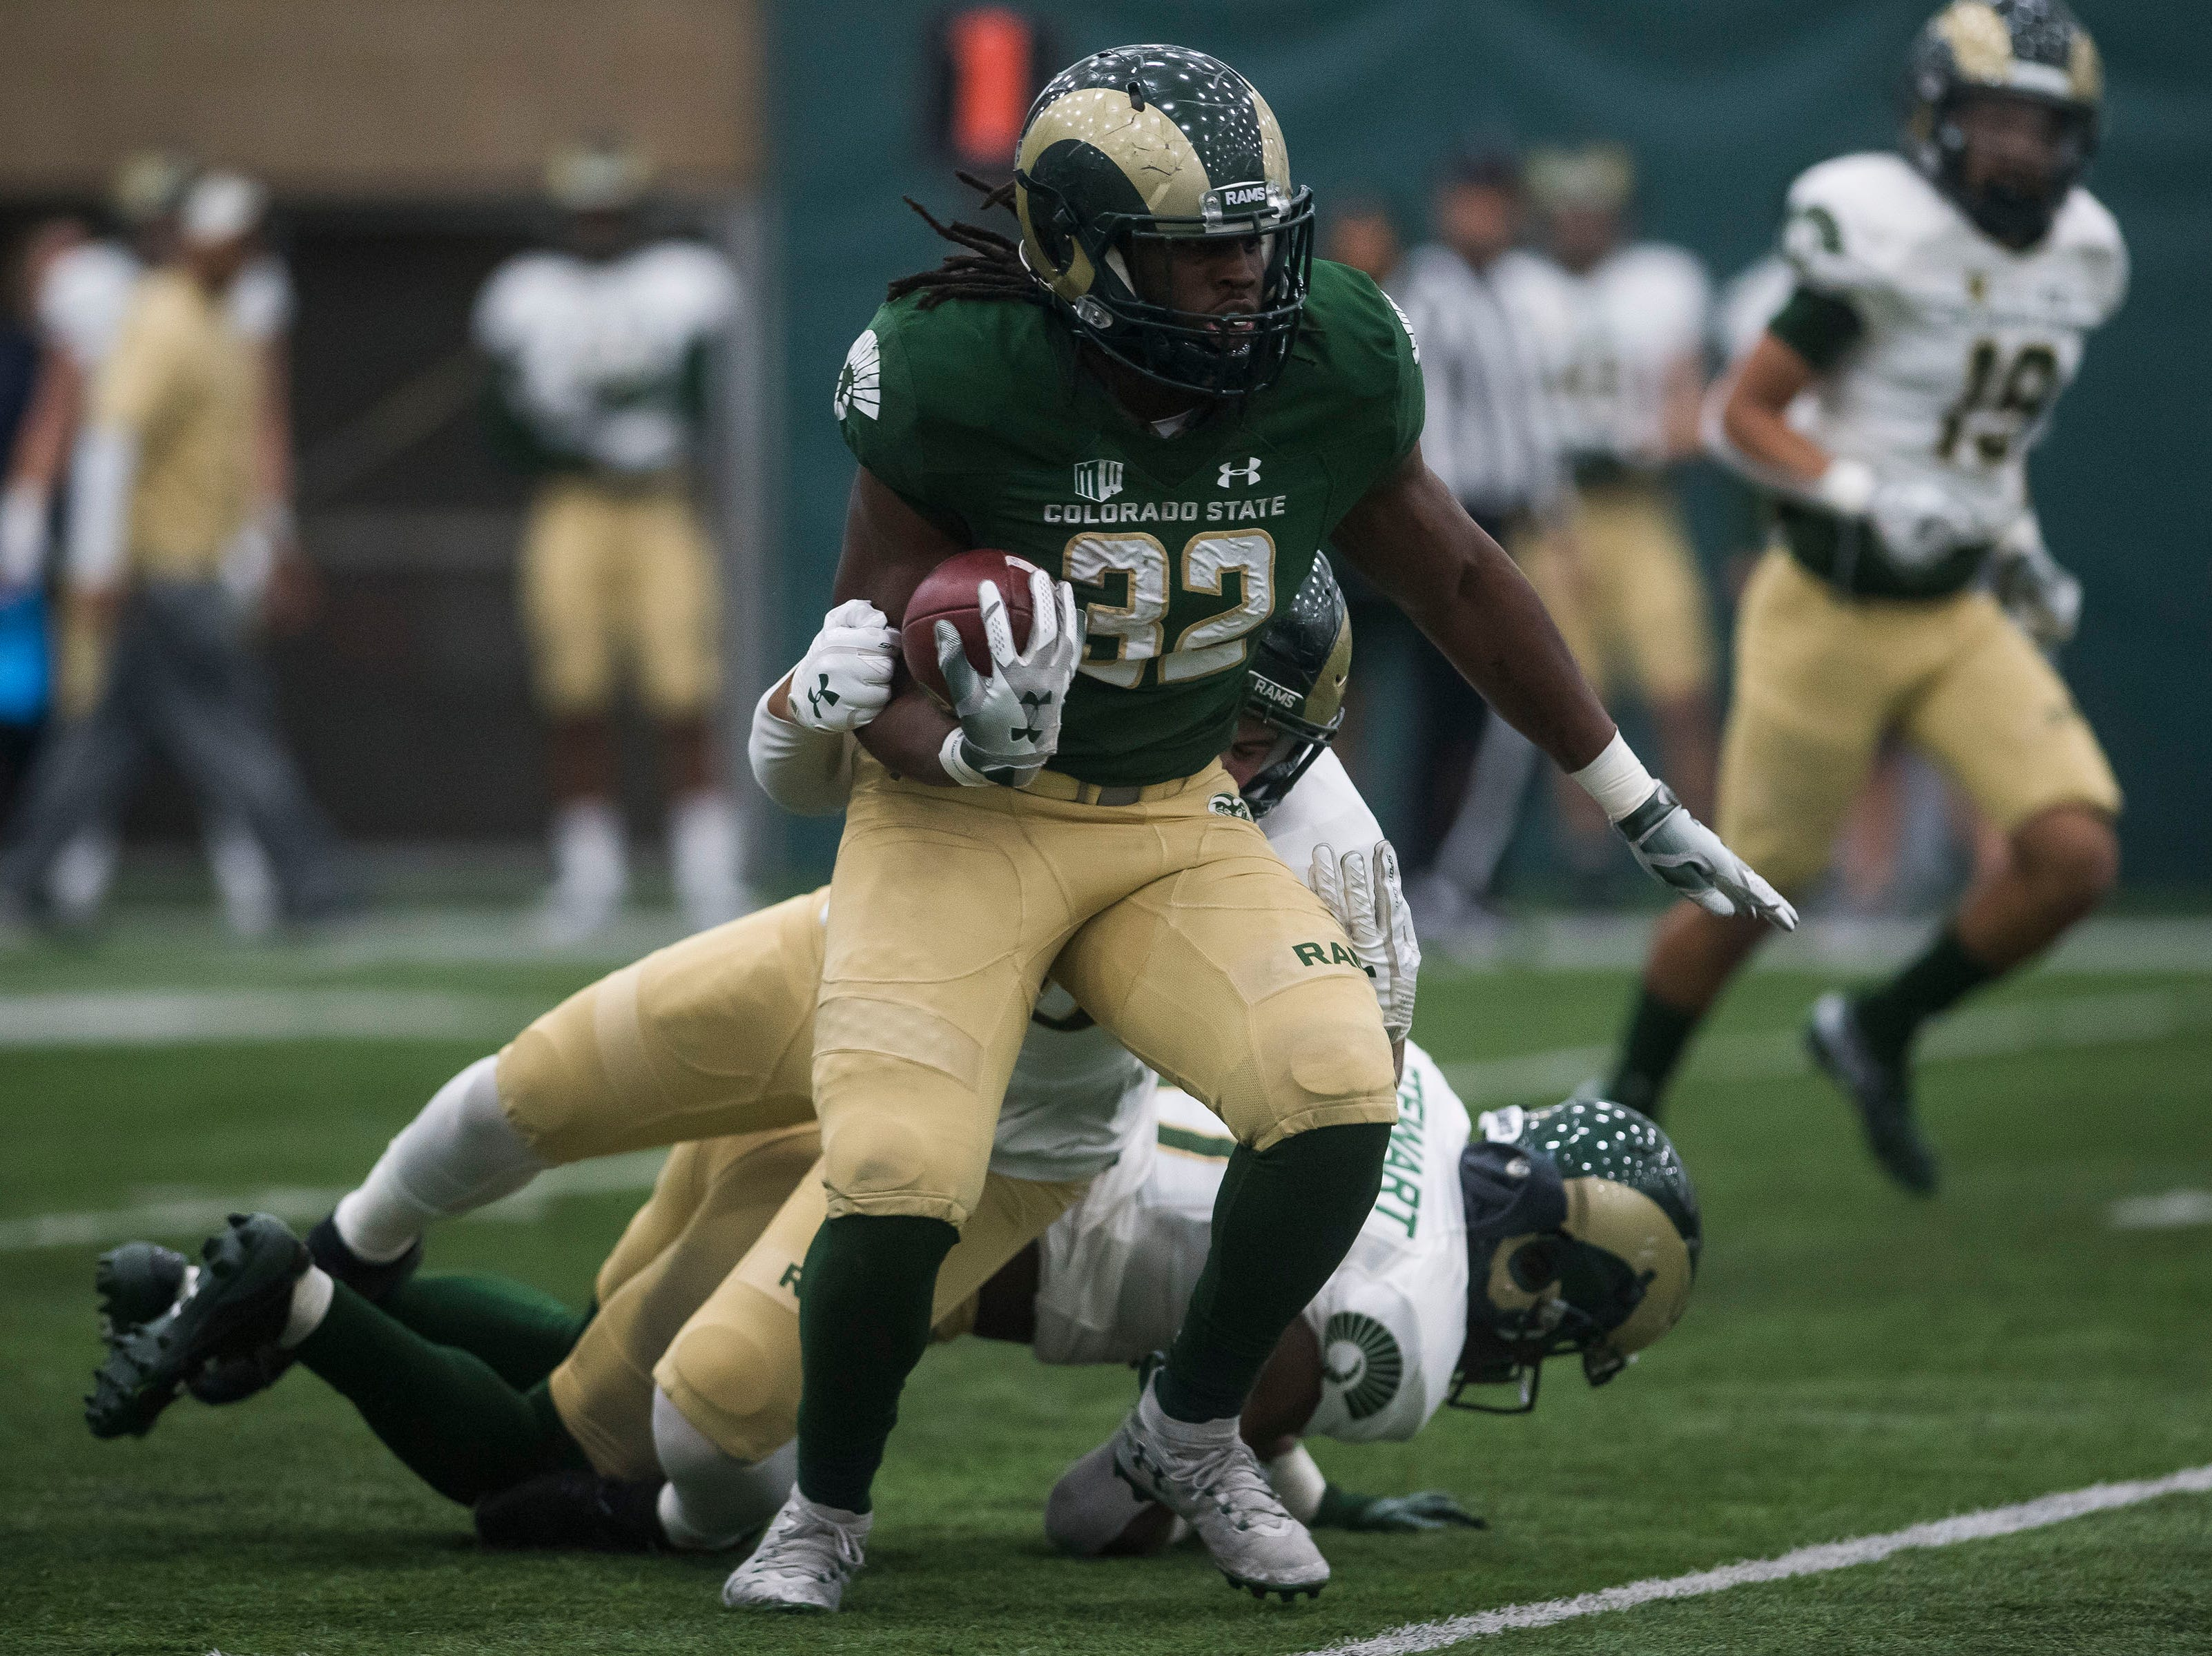 CSU junior running back Marcus McElroy (32) steps out of a tackle by sophomore linebacker Corte Tapia (50) during CSU's Spring game on Thursday, March 14, 2019, at their indoor practice facility in Fort Collins, Colo.